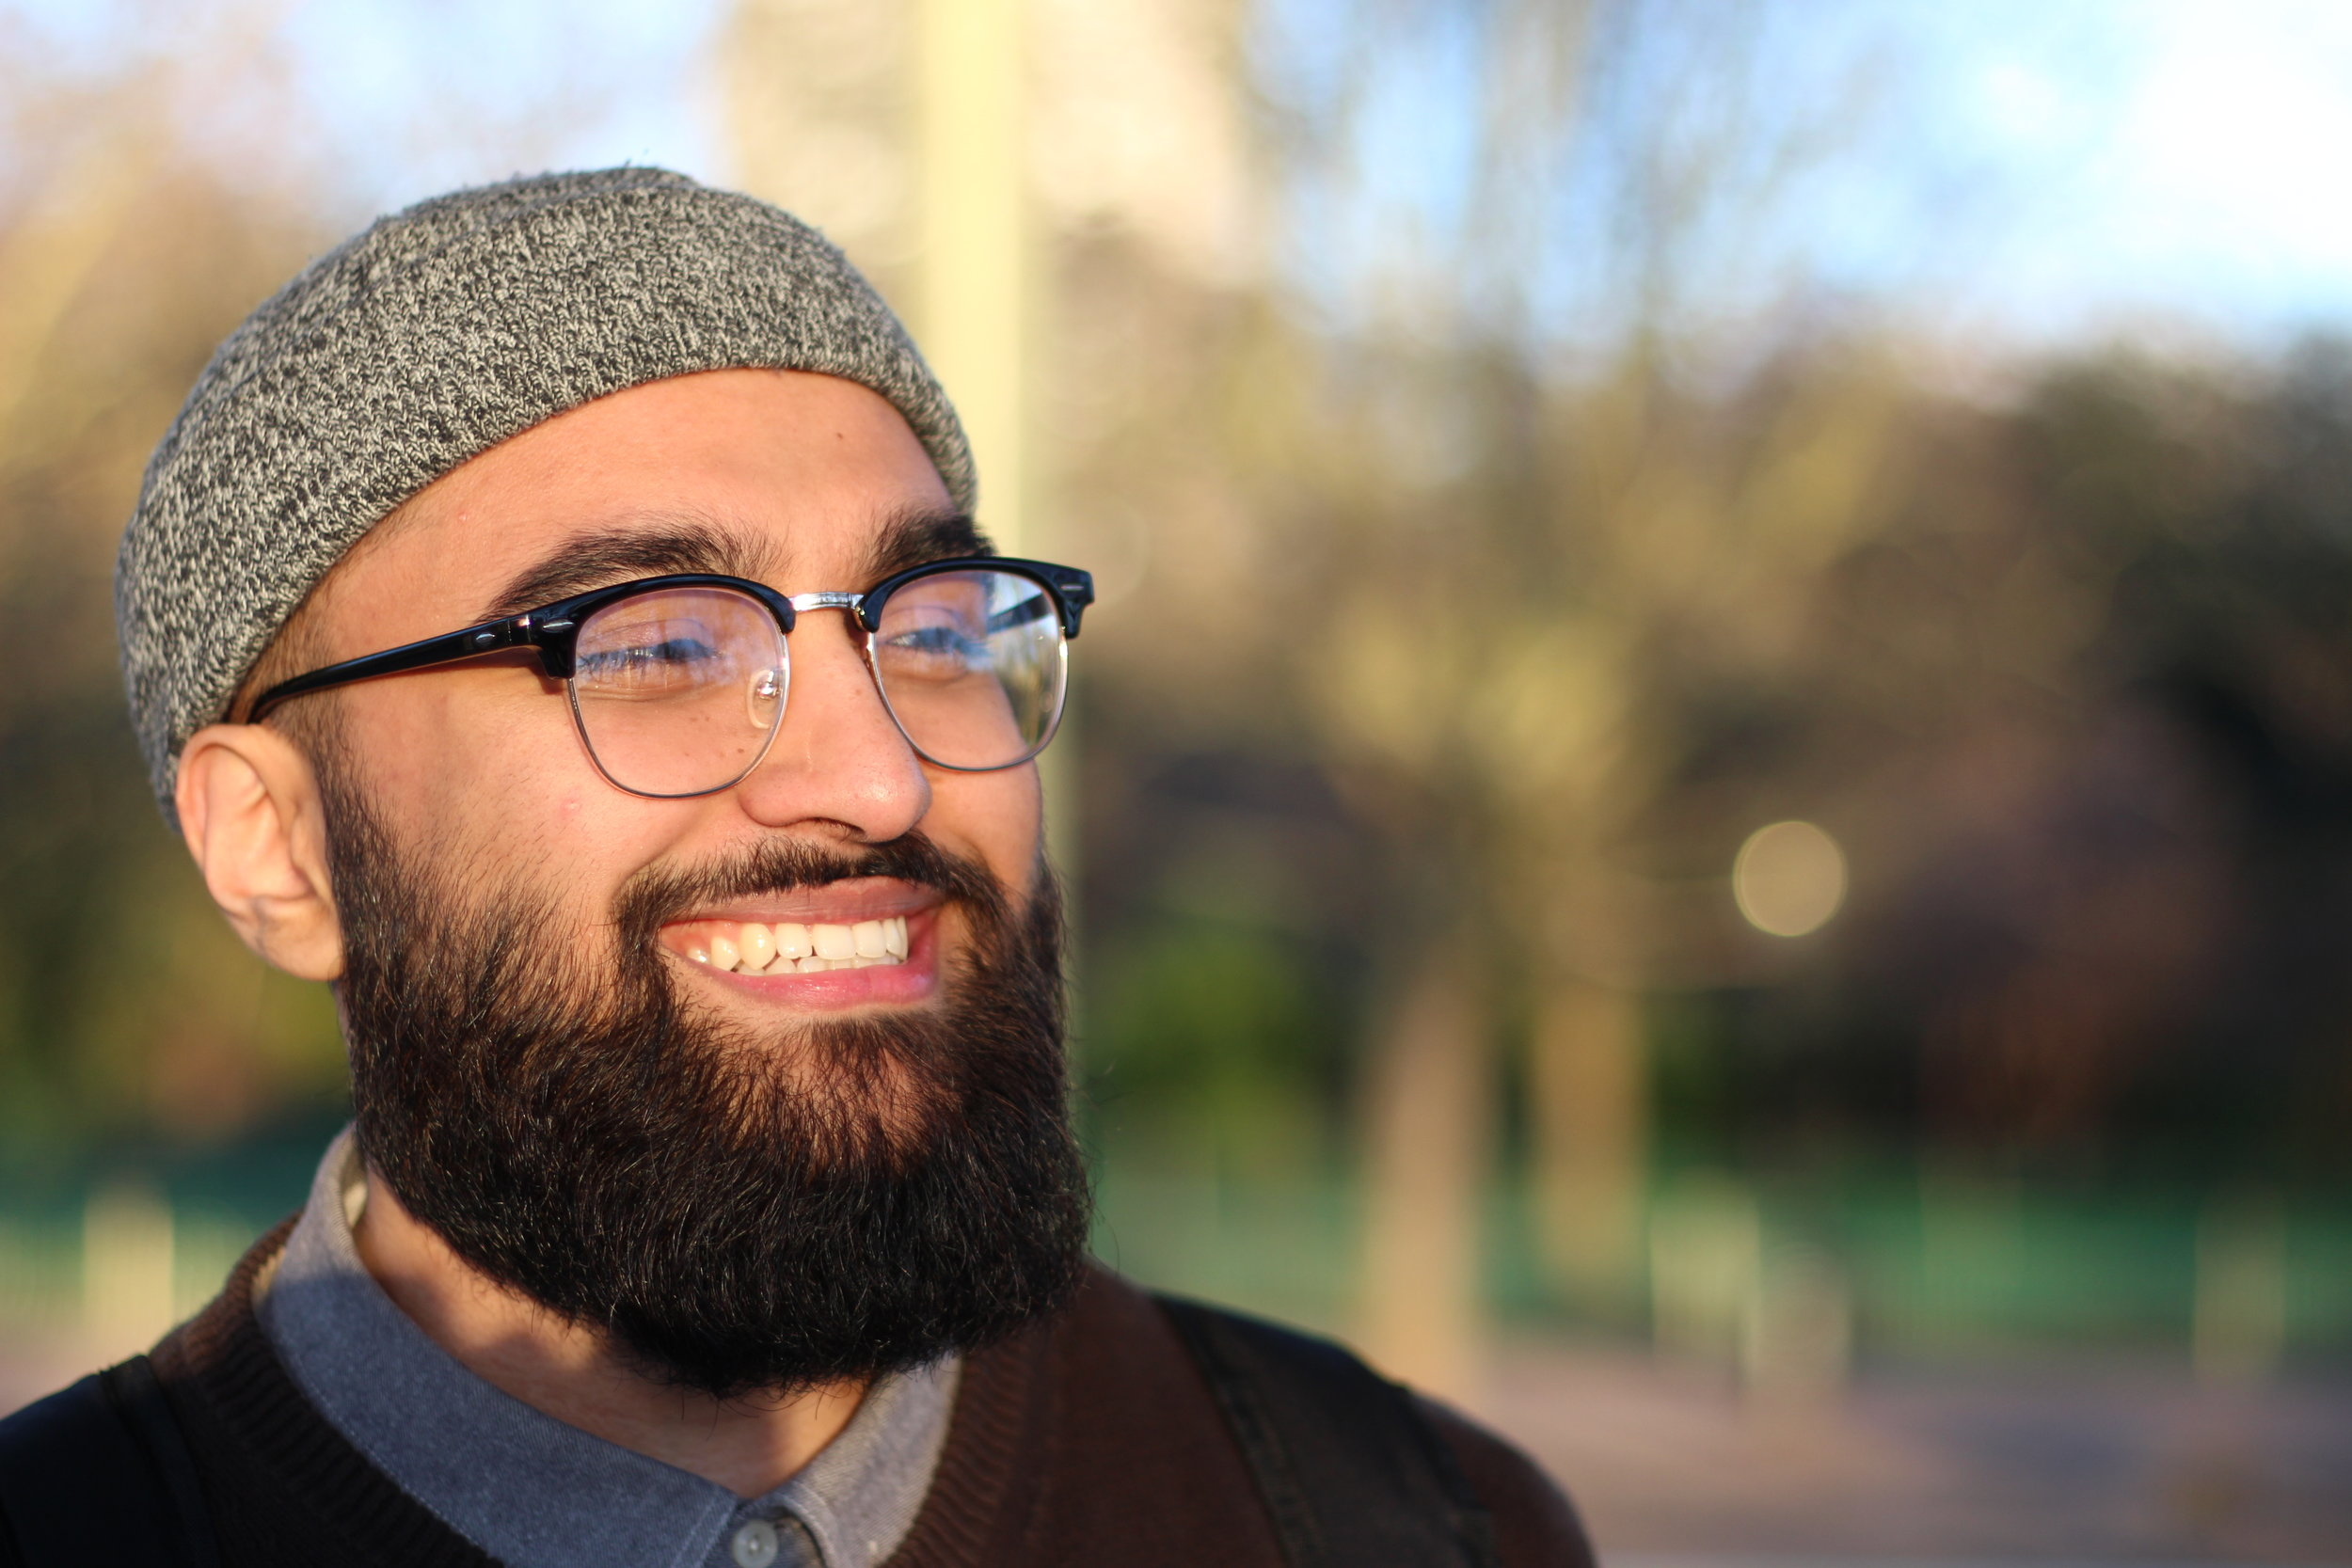 Eissa Dar   Eissa completed his Masters at the University of London in 2019 specialising in Islamic Law. His interests include Arabic and the Islamic sciences. Eissa is an avid follower of anything pop culture and spends his spare time writing.  For Bahath he acts as the managing editor and writer.